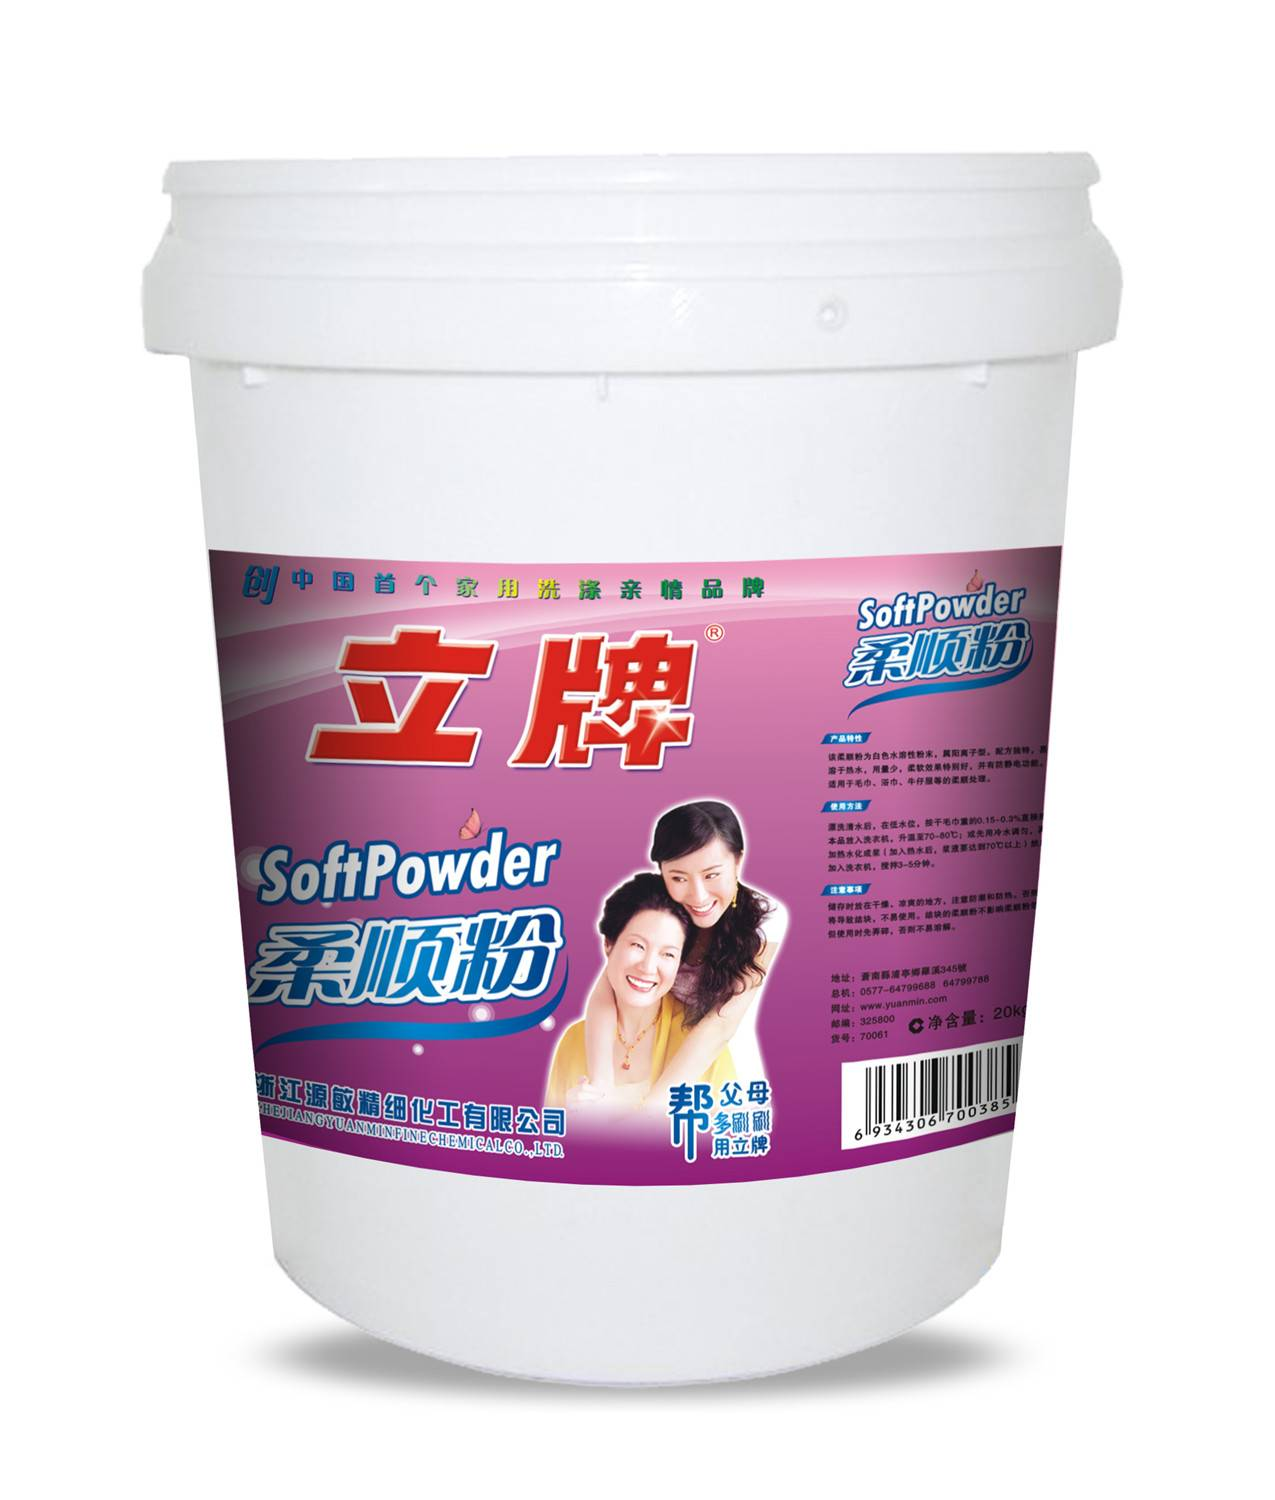 Fabric Softener Powder, Laundry Supplier, OEM or ODM Services are Provided, Weighs 20kg